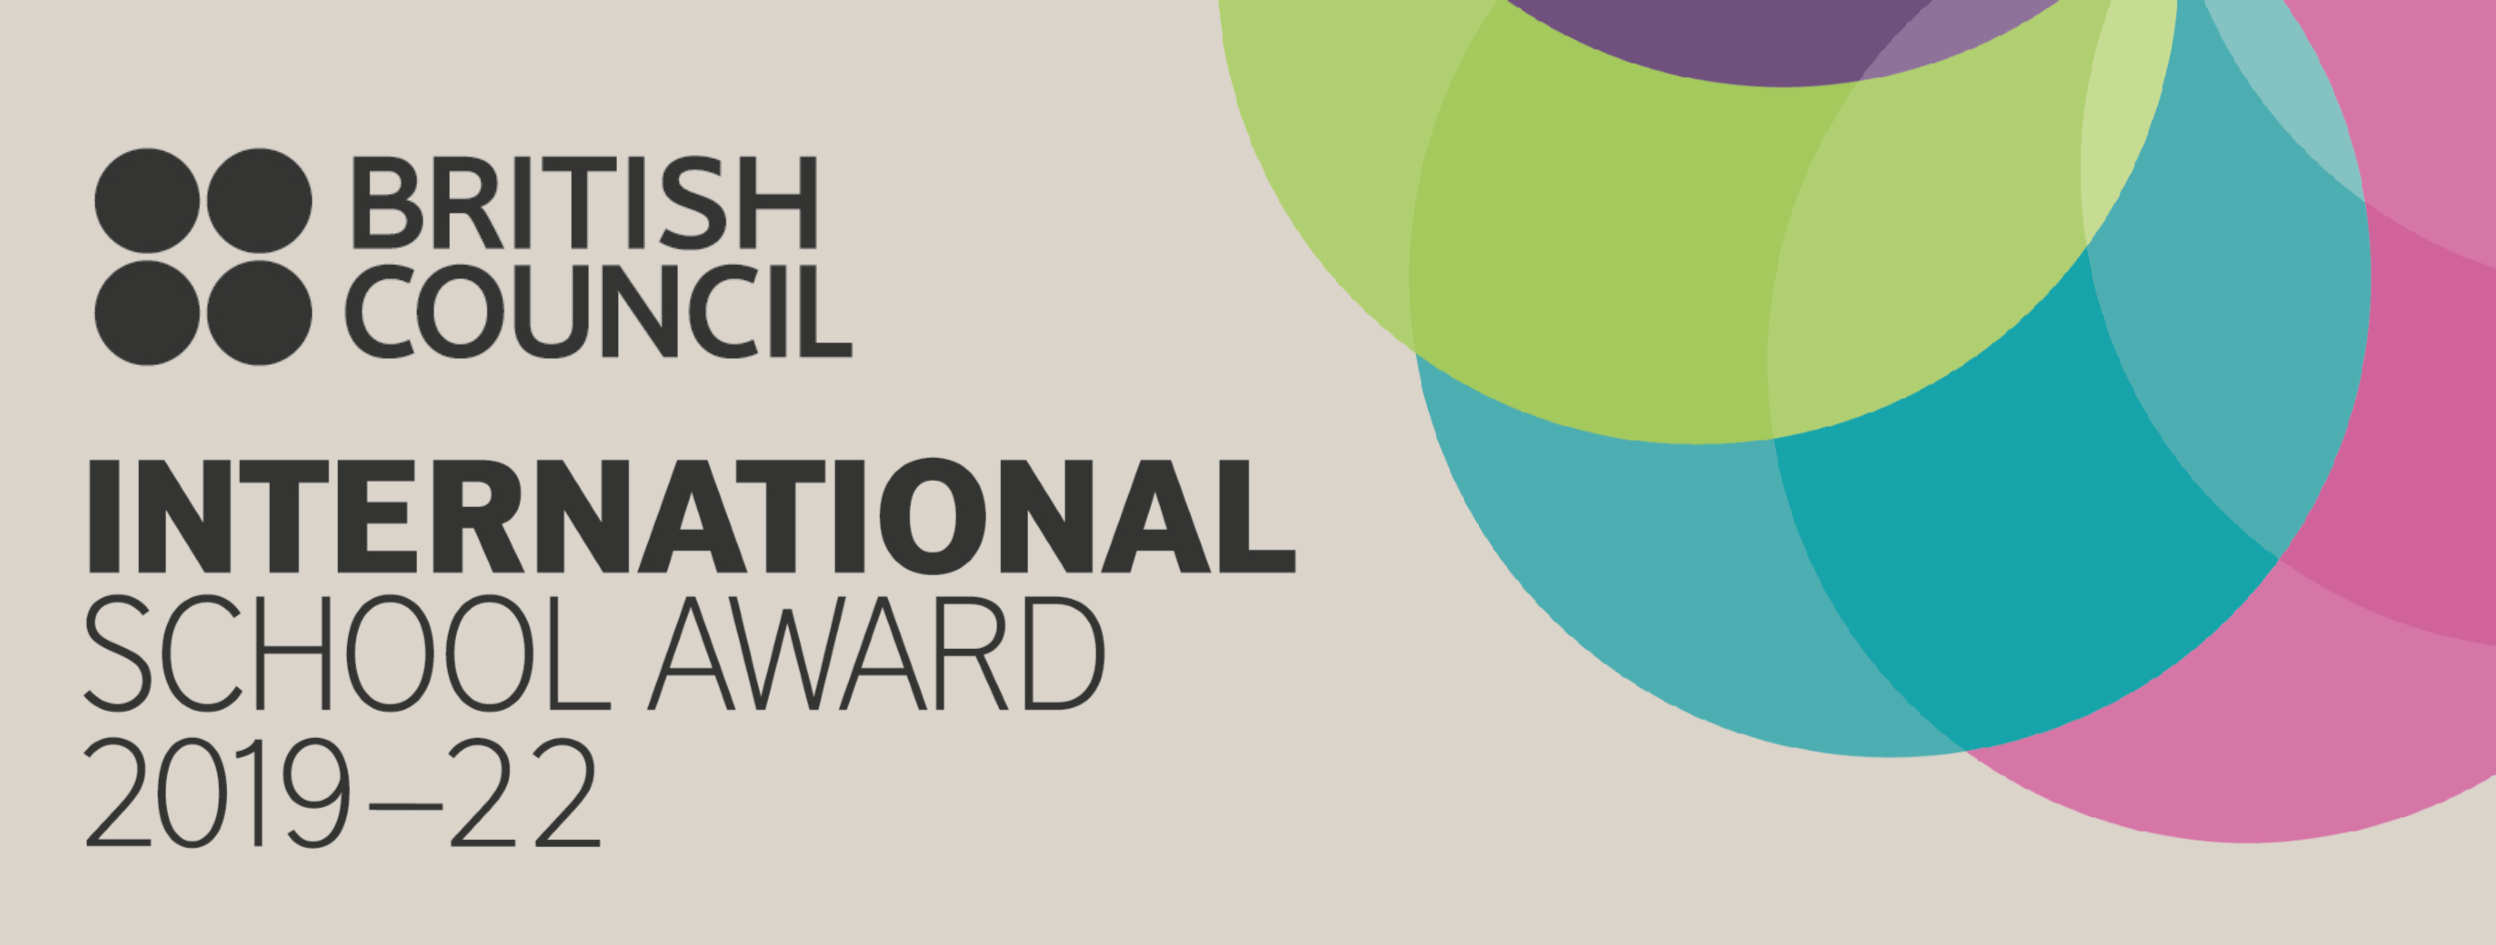 International School Award 19-22.png